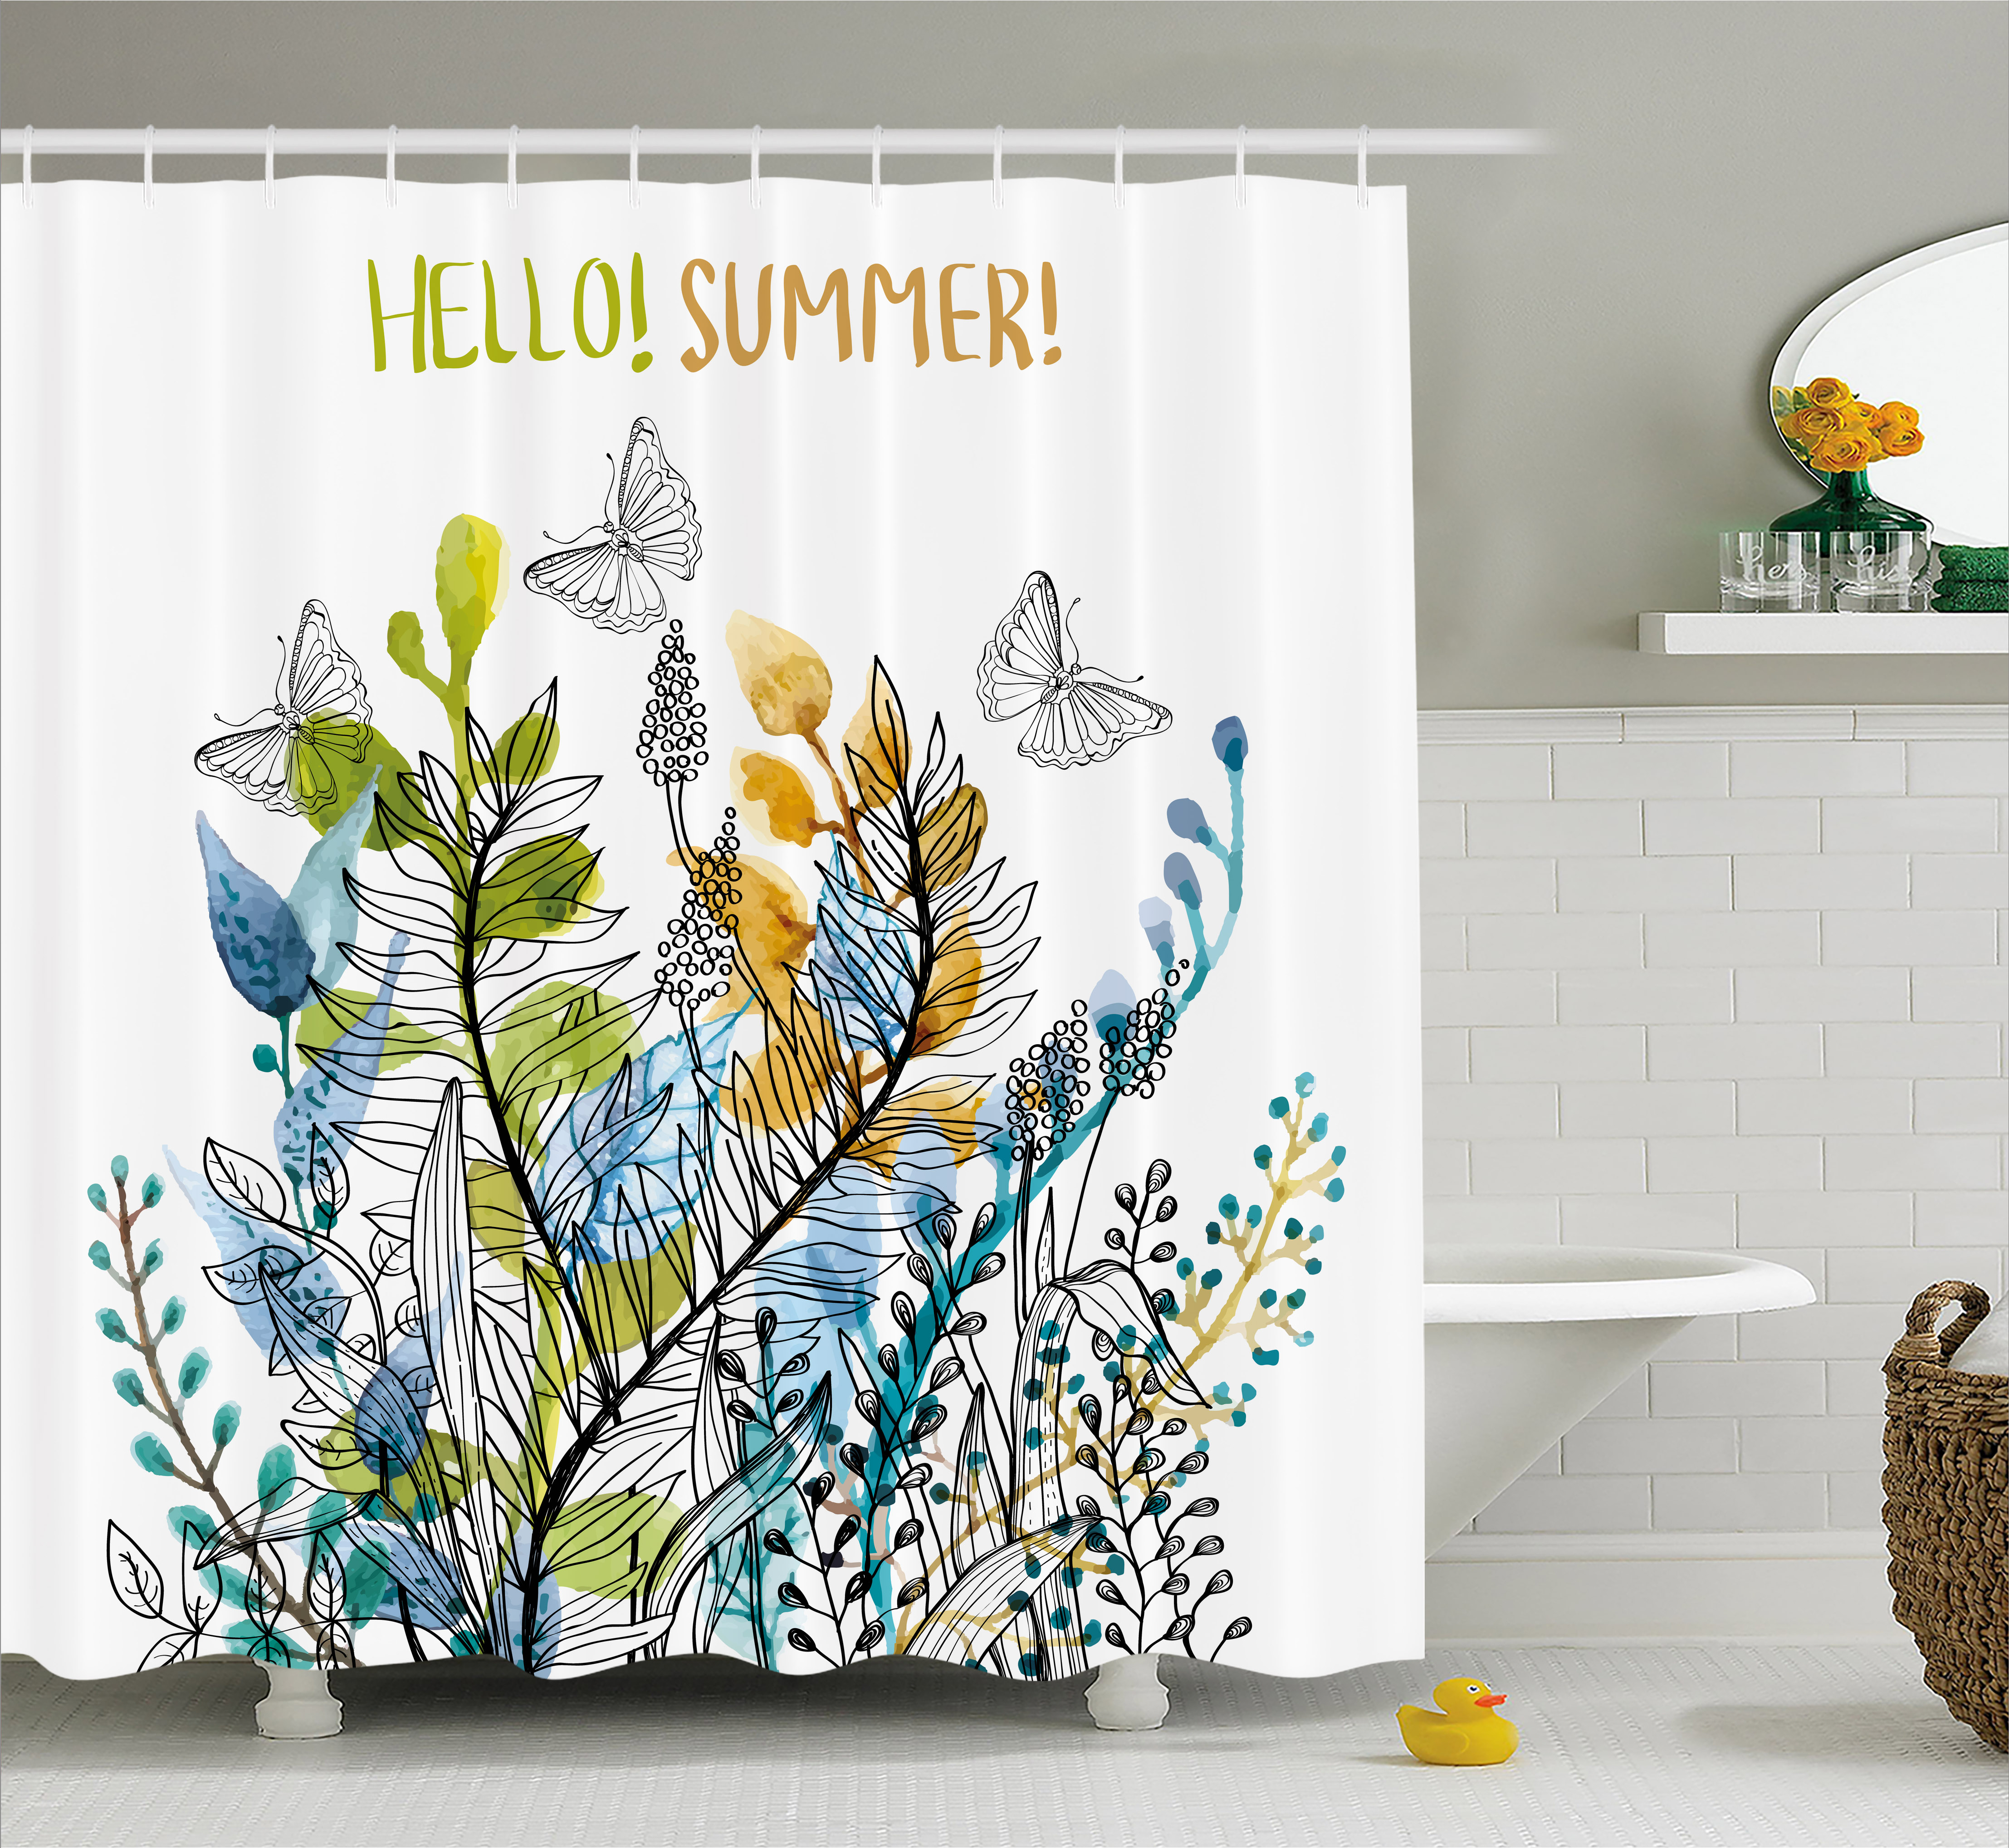 Floral Shower Curtain, Hello Summer with Watercolor Fern Branch Butterfly Harvest Season Paint, Fabric Bathroom Set with Hooks, 69W X 75L Inches Long, Amber Olive Green Blue, by Ambesonne